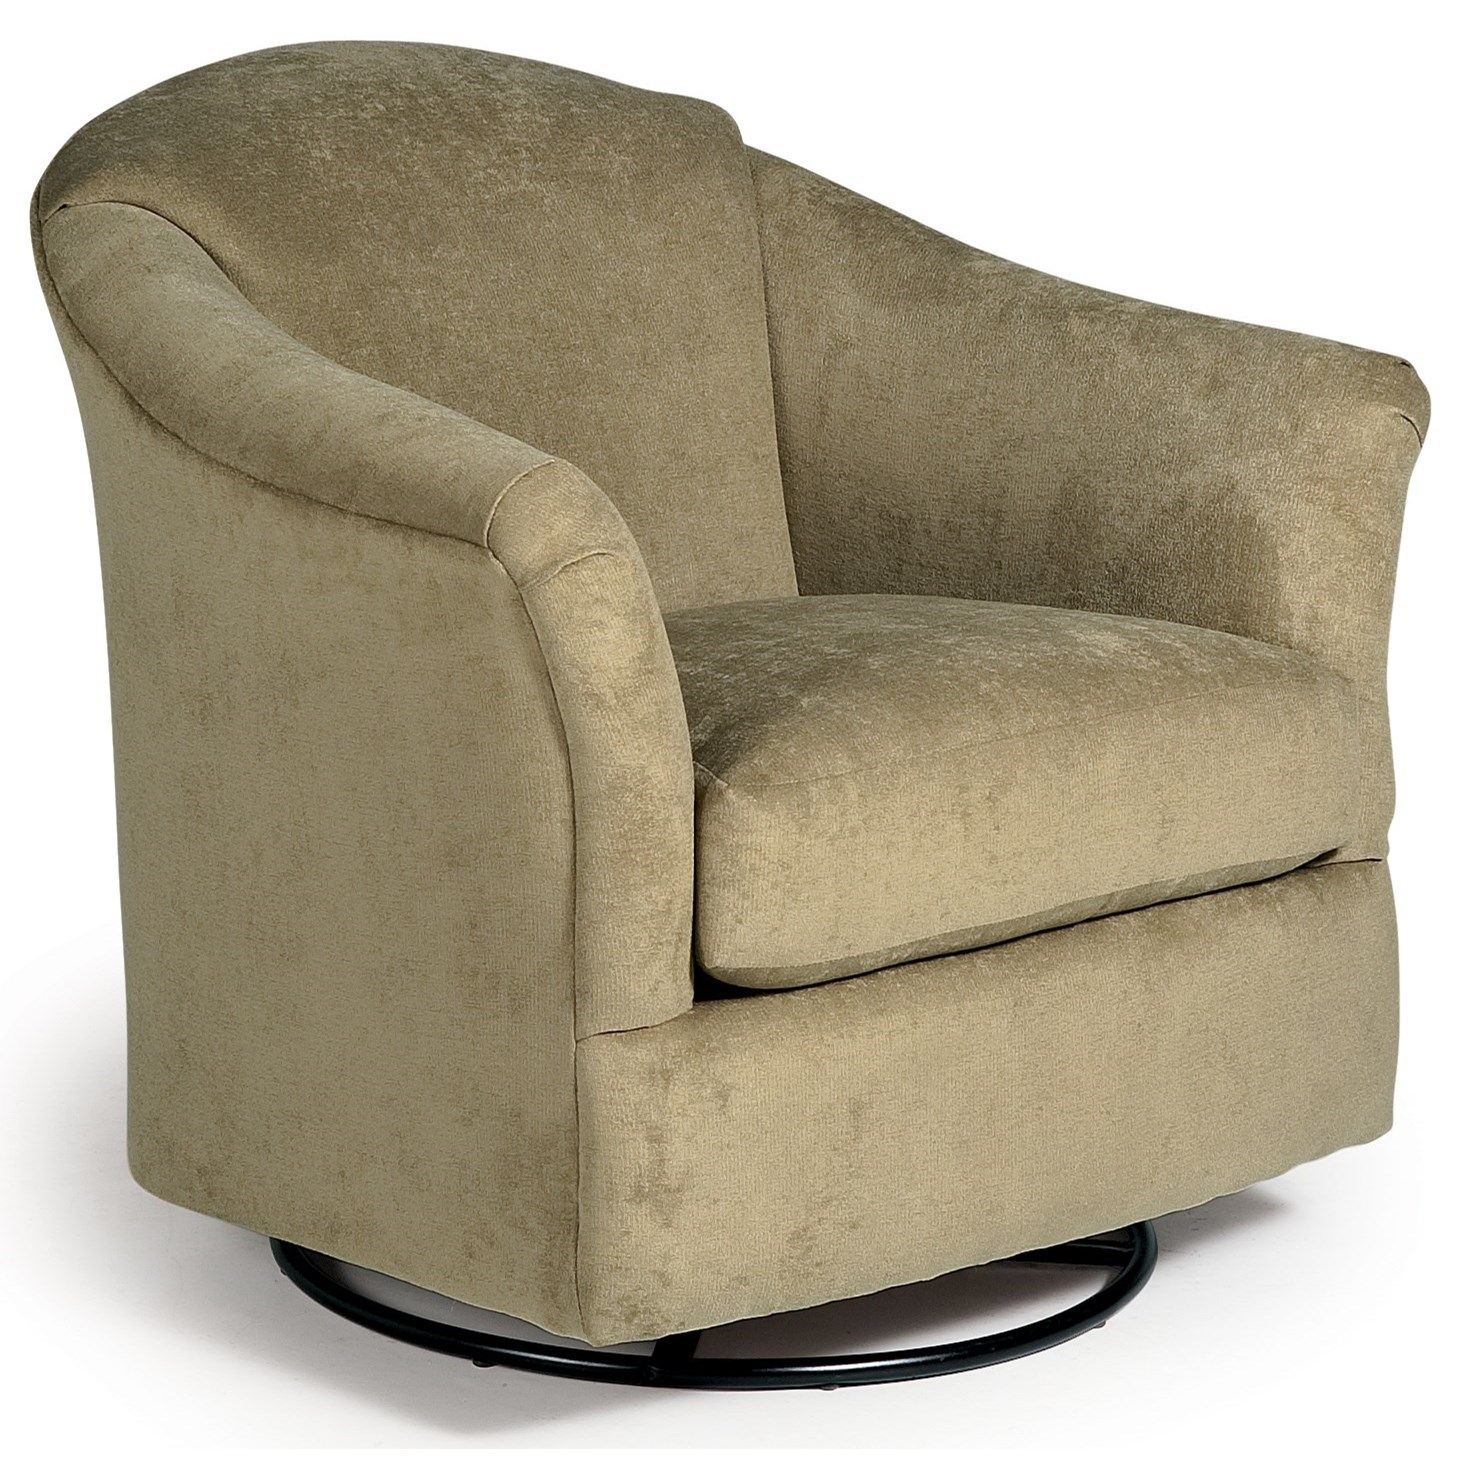 Best Home Furnishings Chairs - Swivel Glide Darby Swivel Glider - Item Number: 2877